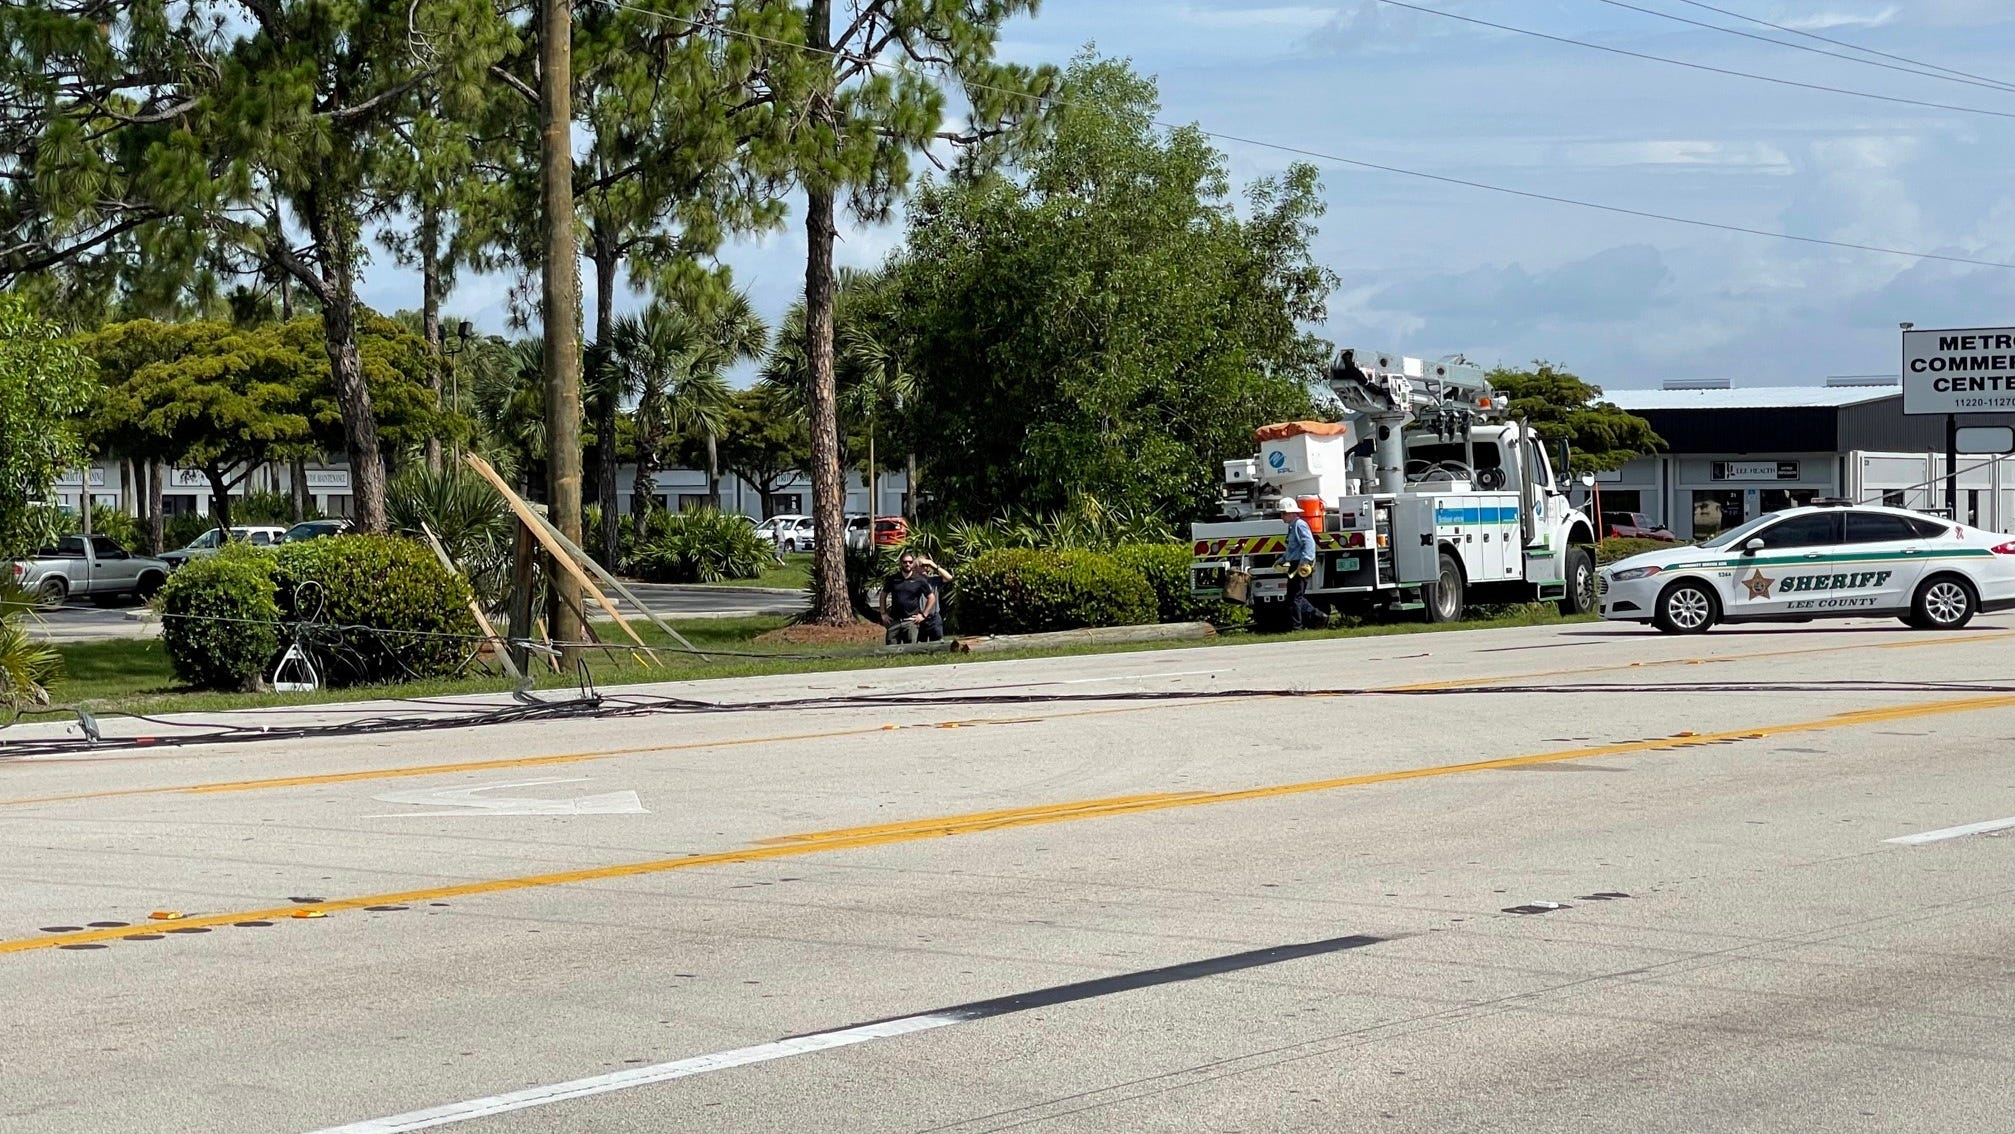 Downed utility lines crossing Metro Parkwayshut down the busy roadway Tuesday morning diverting trafficdown side streets and briefly trapping a North Fort Myers woman in her SUV/